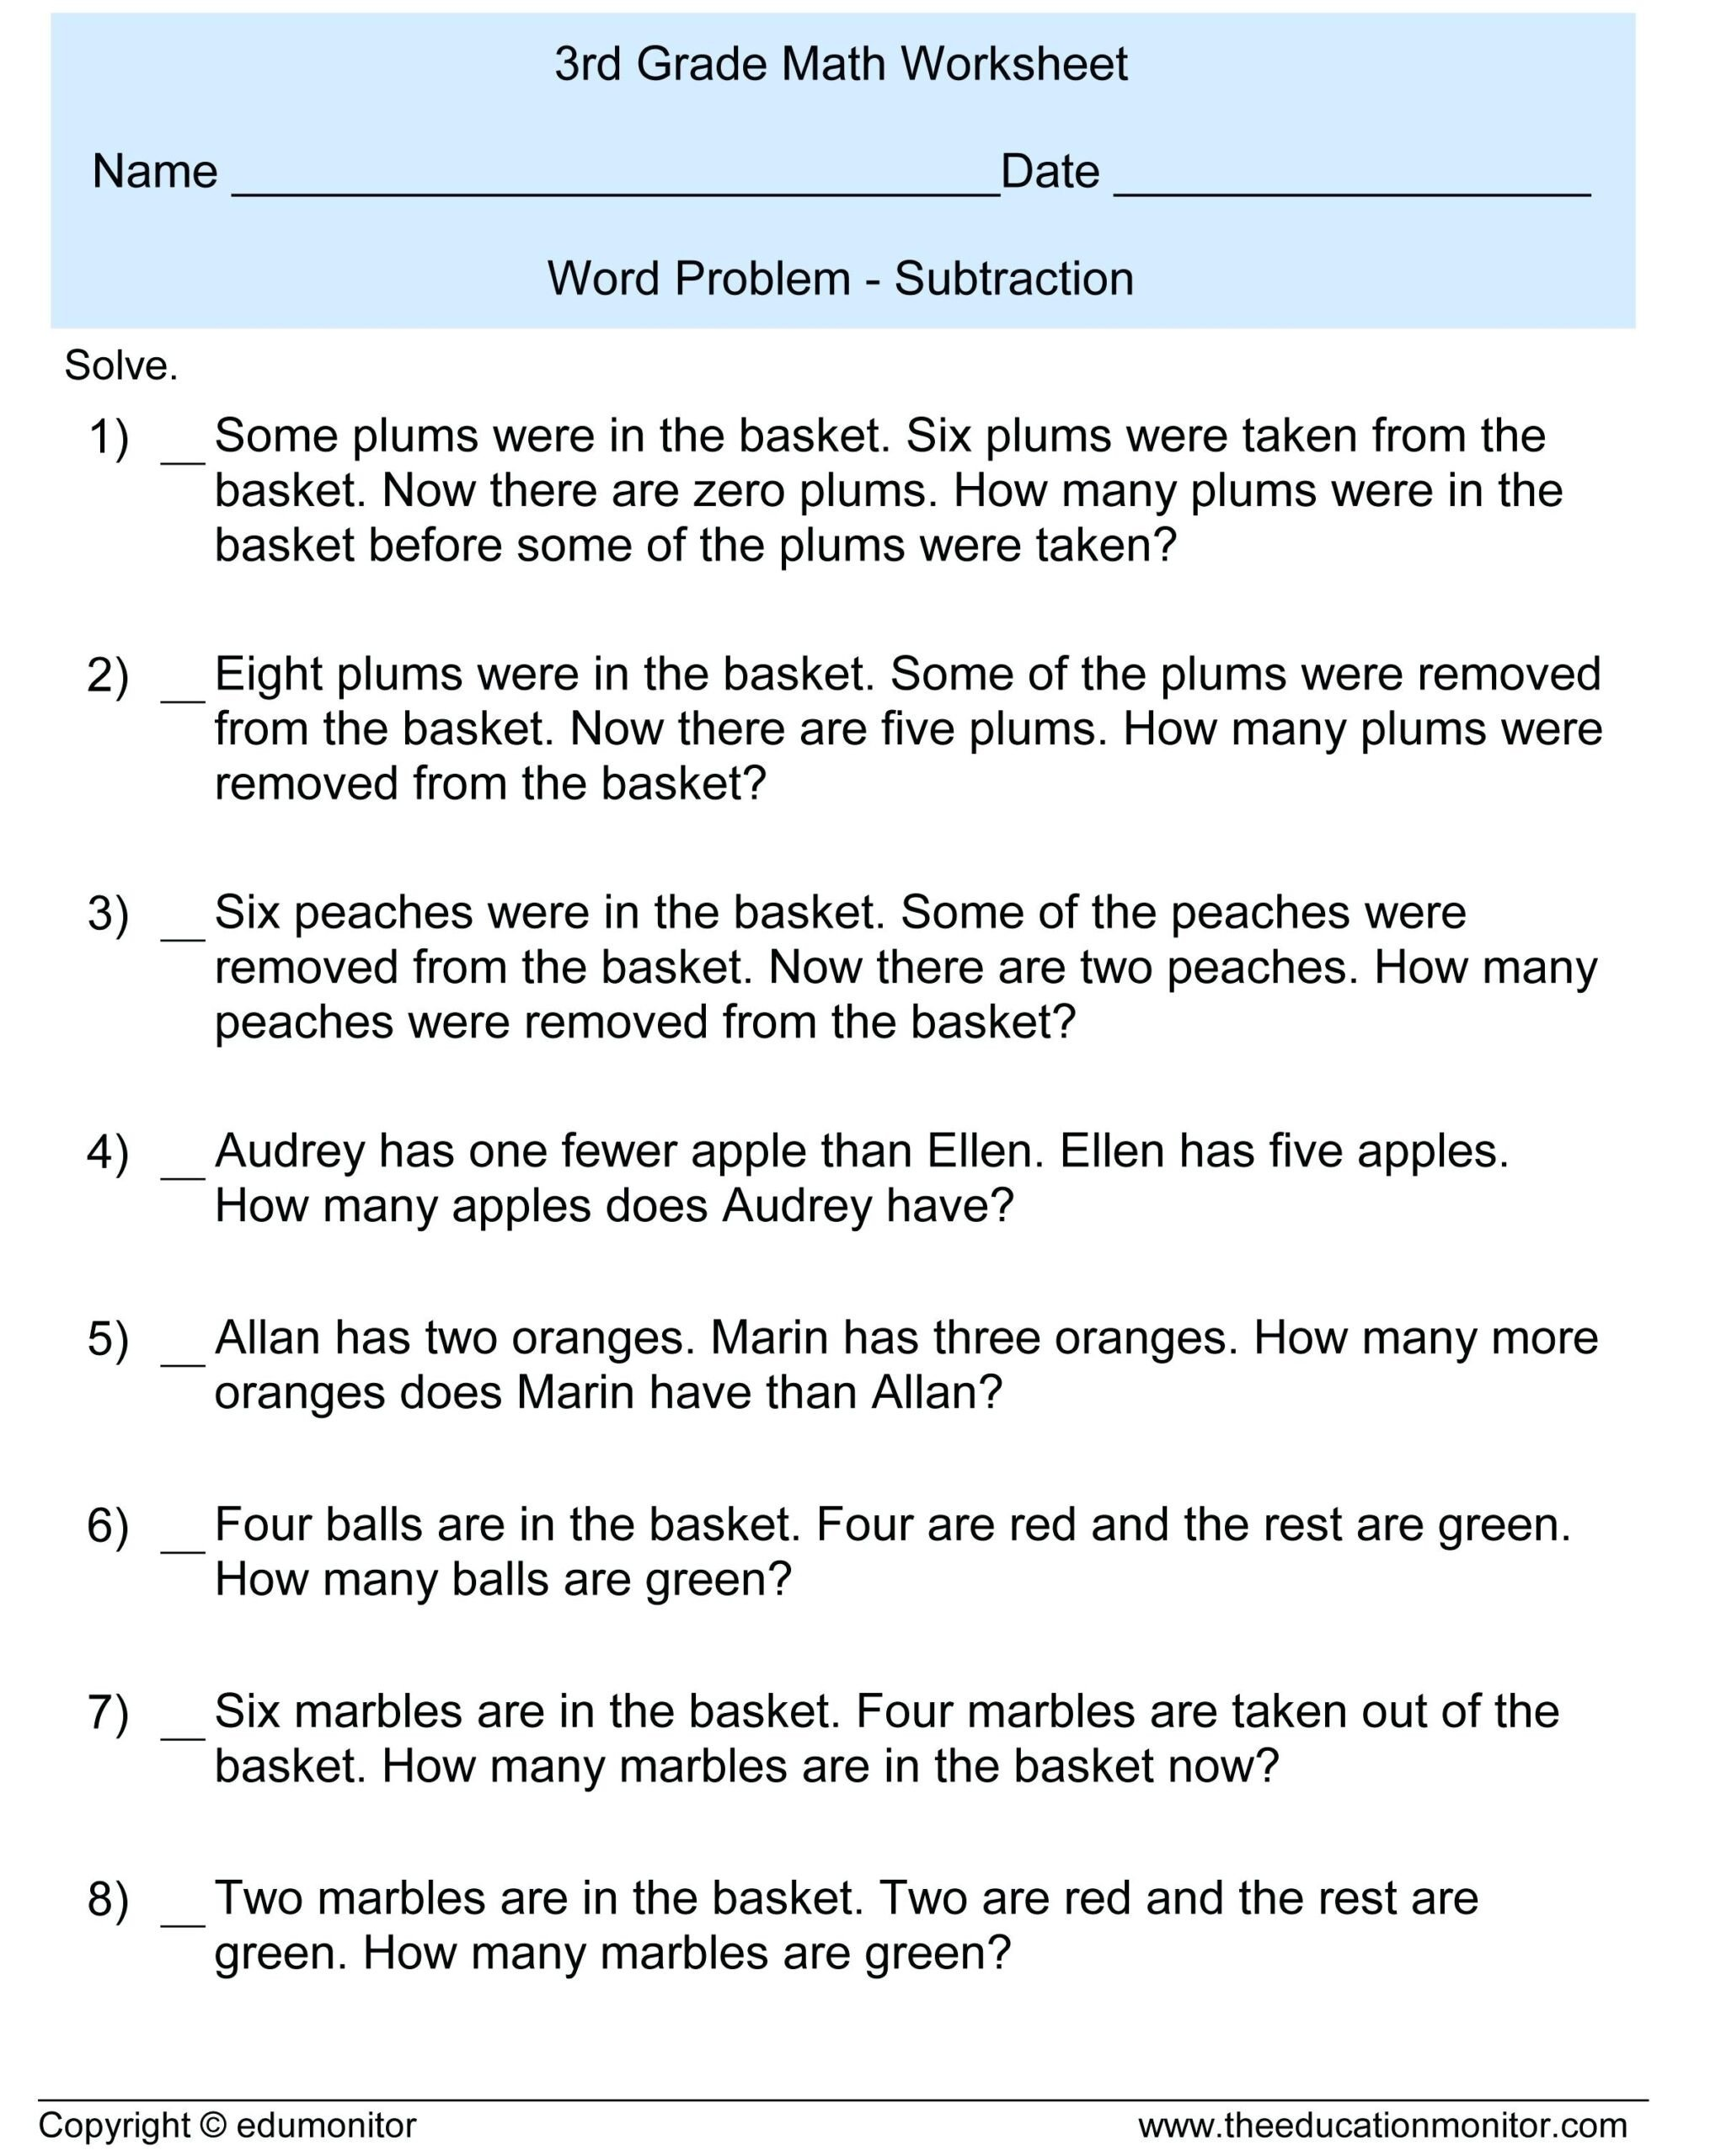 Third Grade Editing Worksheets 3rd Grade Subtraction Word Problems Free Math Worksheets and